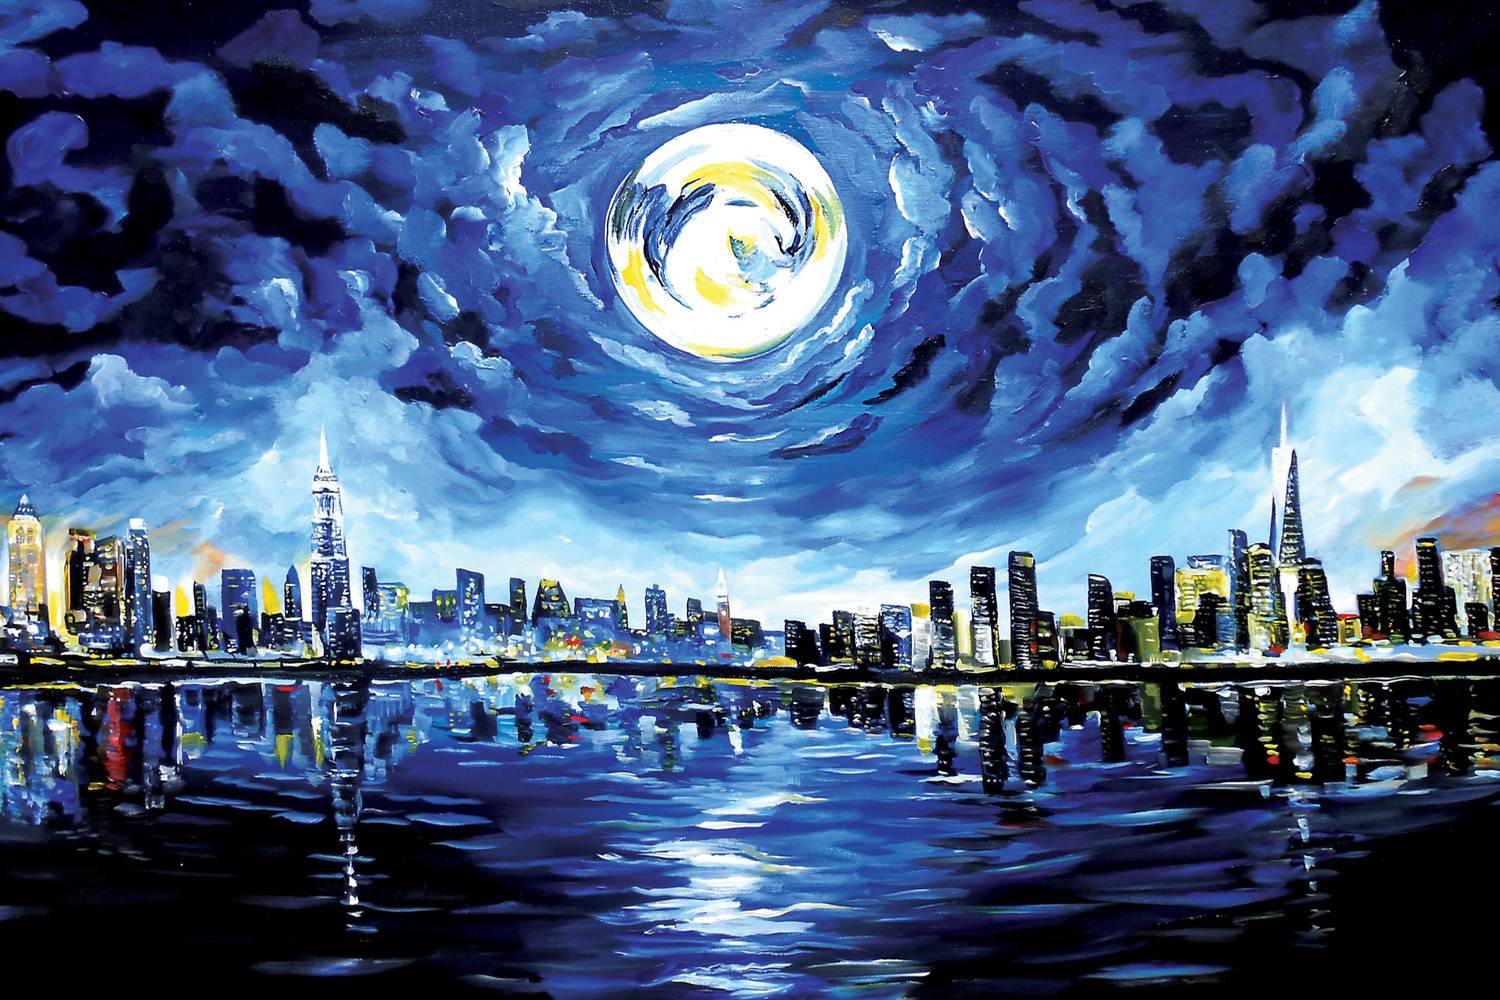 a painting that shows the new york skyline, its reflection in the water, and a full moon